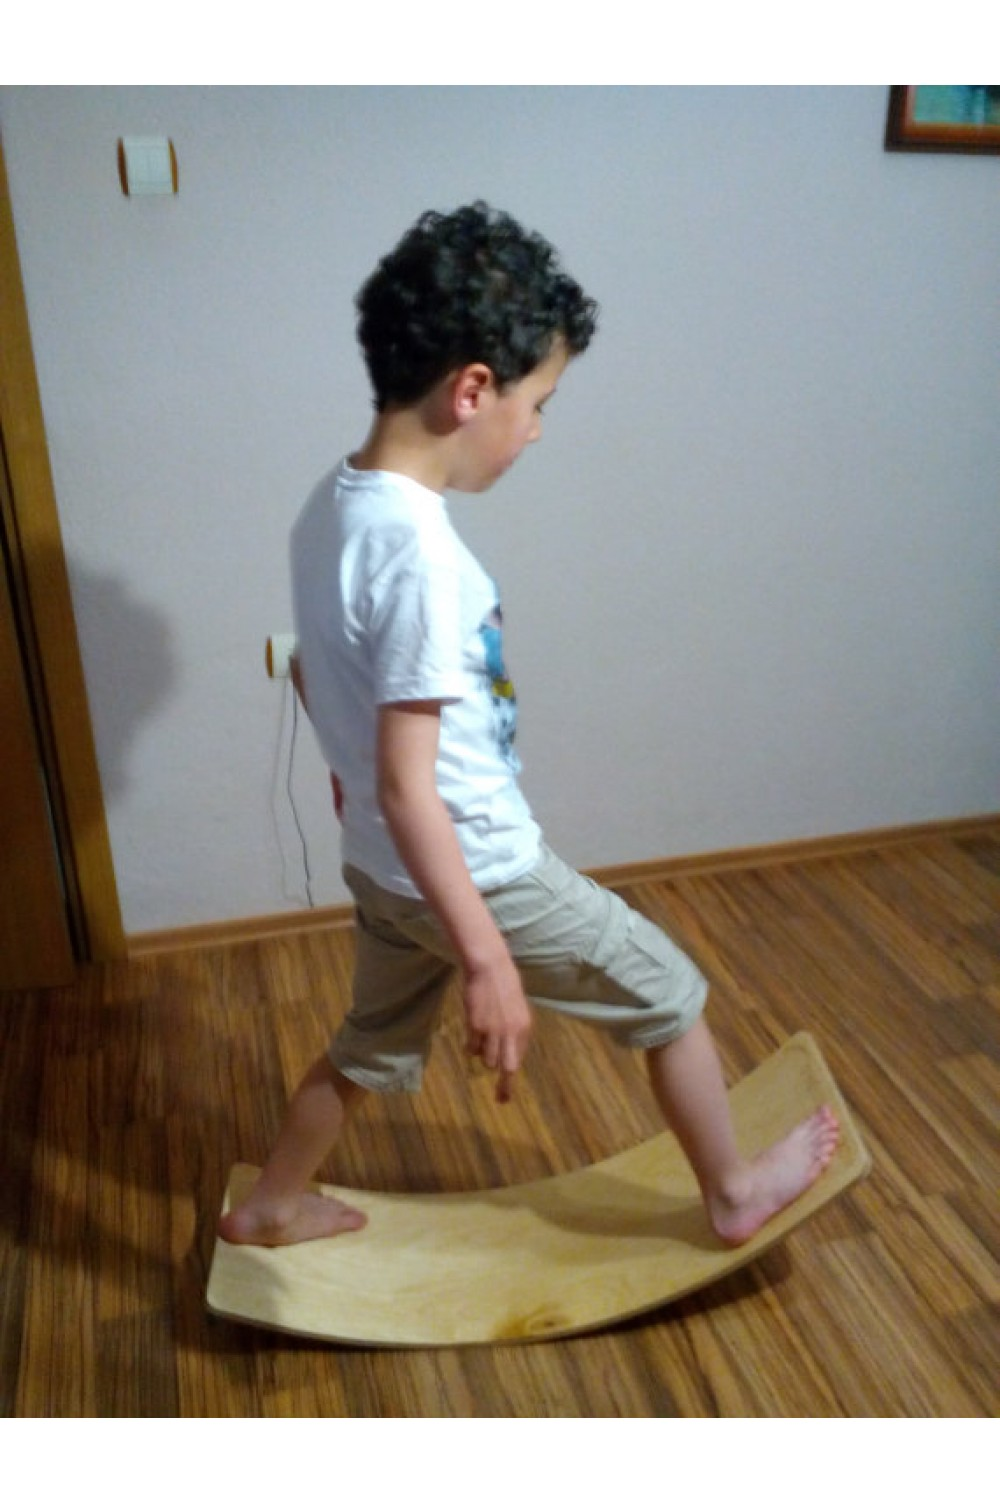 Rocking Board for kids | Balanced Board for Kids | Rocker Board | Eco friendly children toy